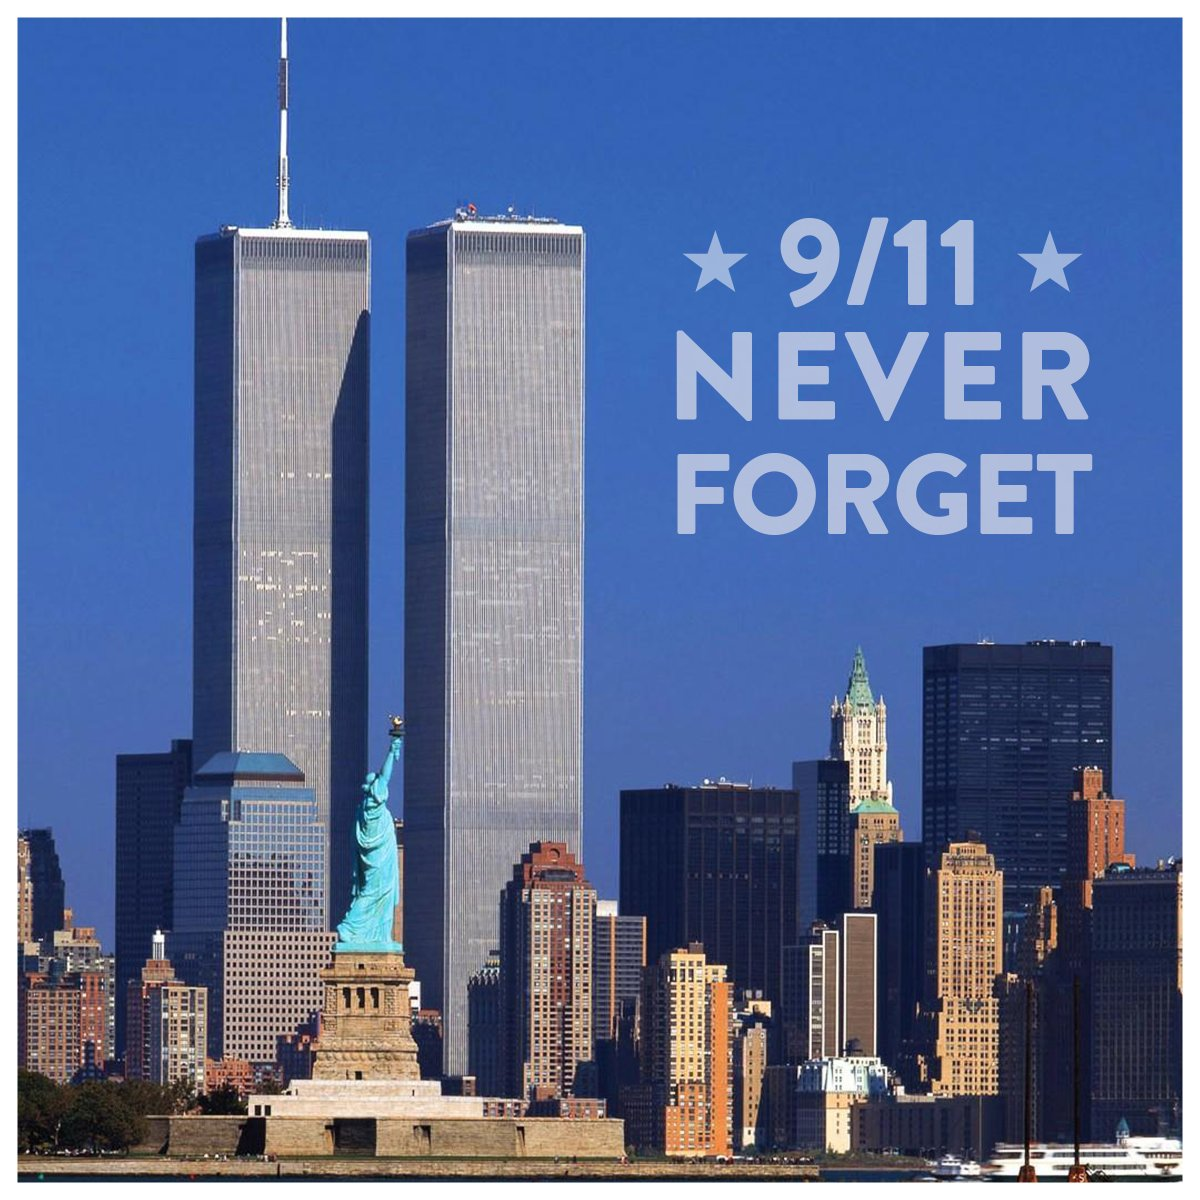 Remembering and honoring those we lost 19 years ago today. #NeverForget